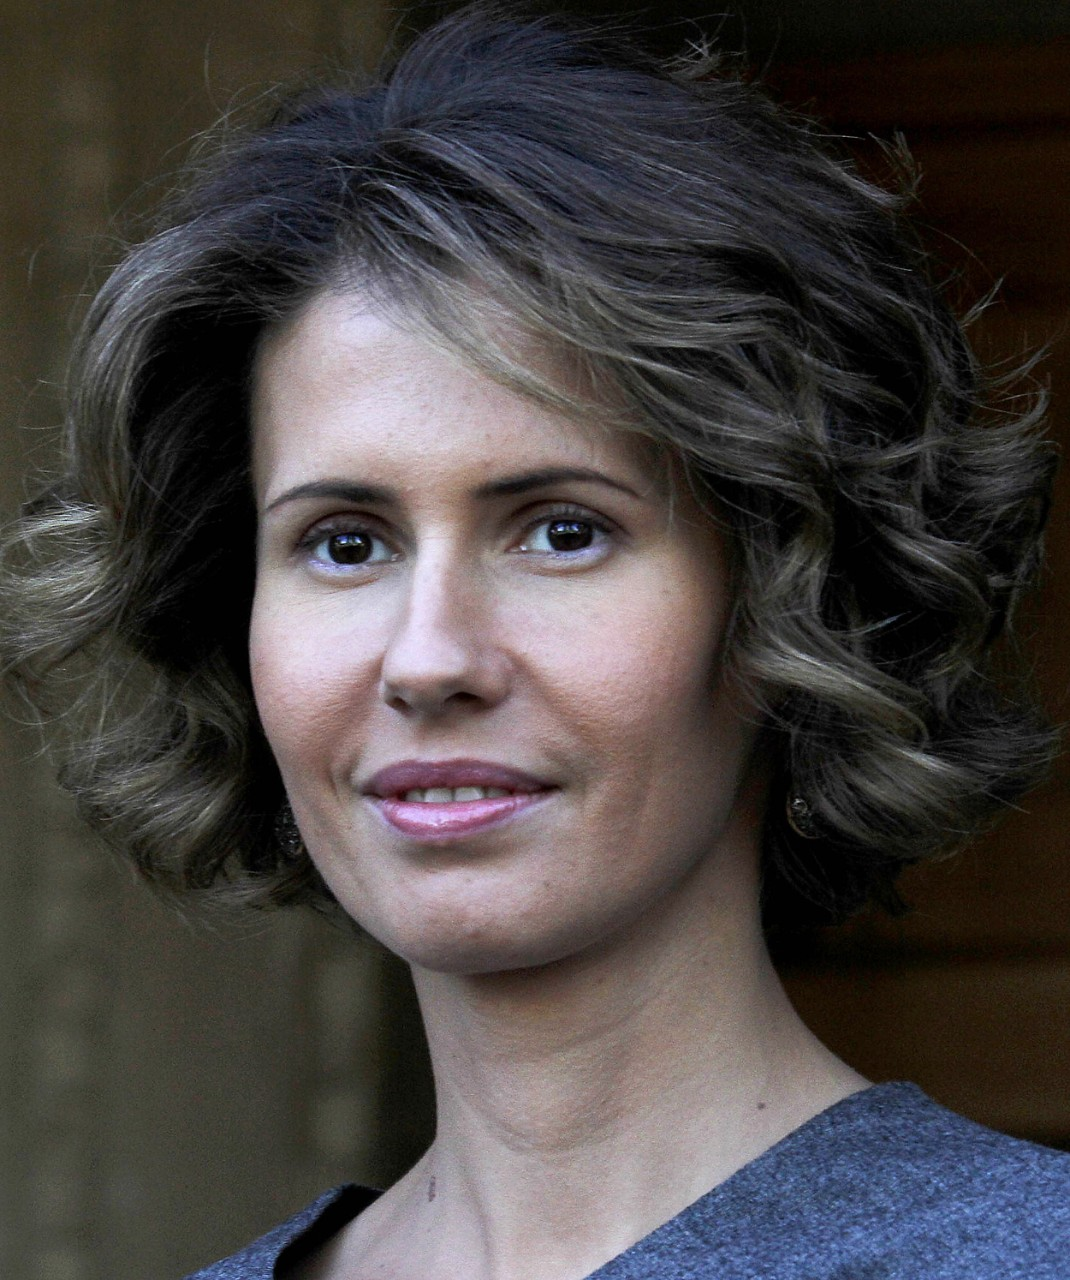 Vogue's Joan Juliet Buck and <b>Asma al-Assad</b>: the Dictator's Wife Duped Her - 138473871.jpg.CROP.cq5dam_web_1280_1280_jpeg